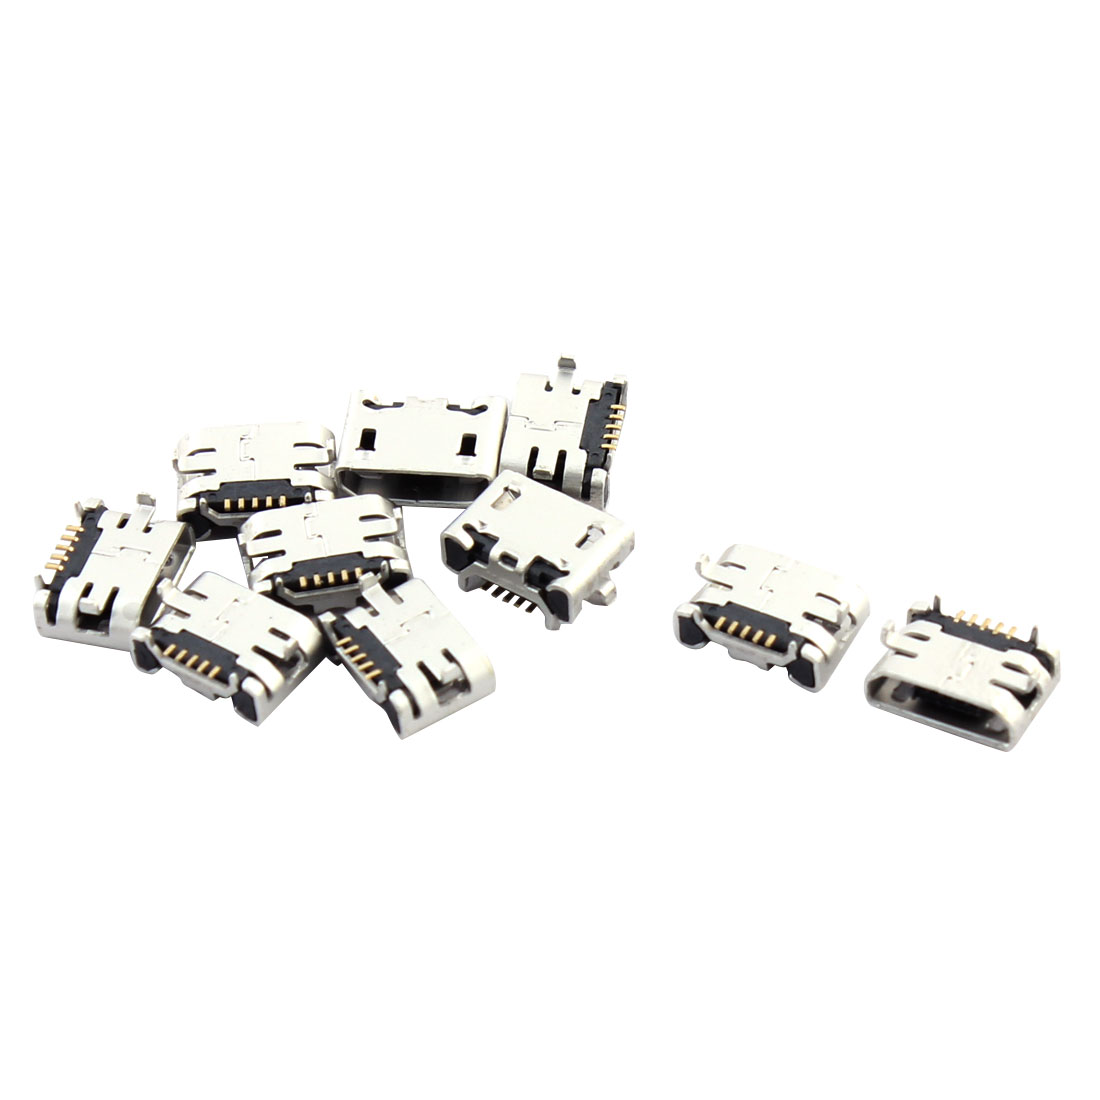 Cell Phone Type B Micro USB Female Charging Connector Jack Port Socket 10 Pcs